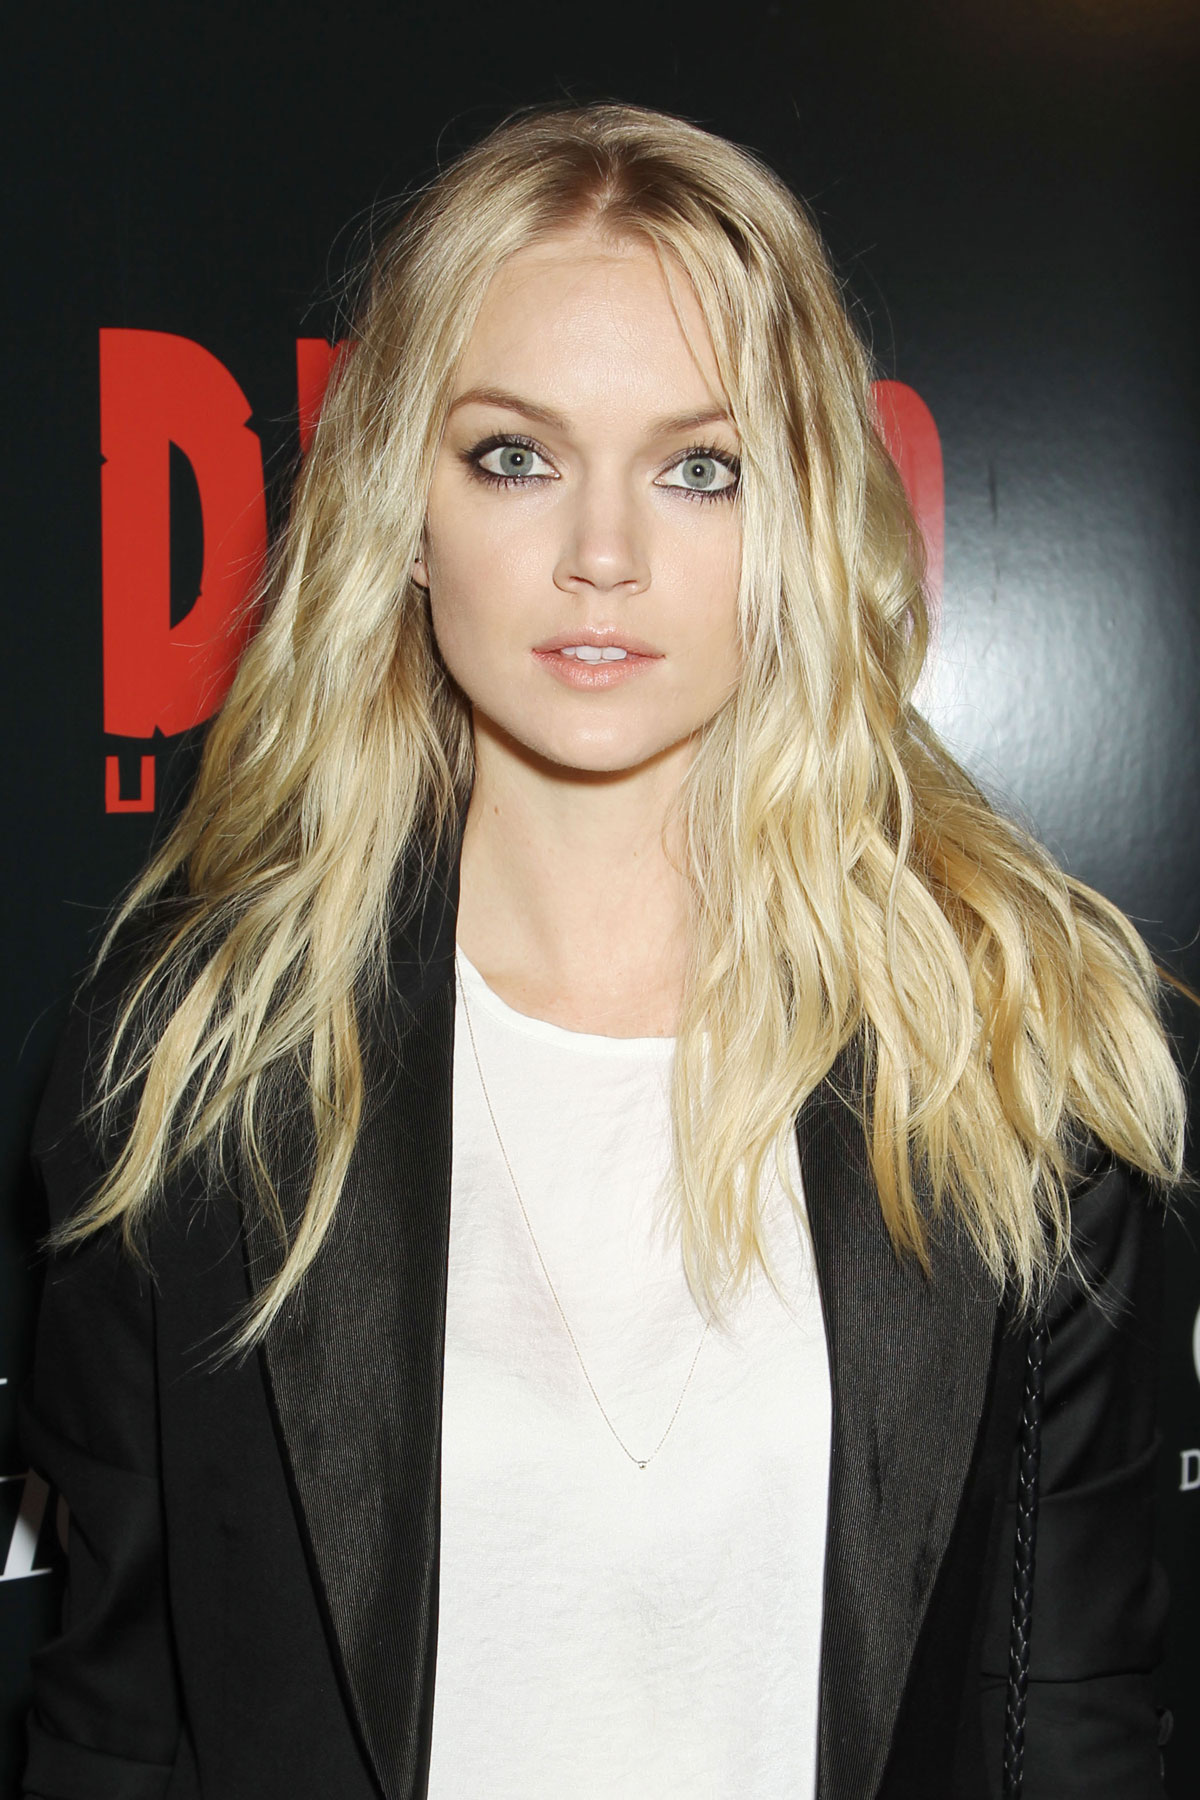 lindsay ellingson tumblrlindsay ellingson 2016, lindsay ellingson vk, lindsay ellingson wallpaper, lindsay ellingson gif tumblr, lindsay ellingson beauty, lindsay ellingson makeup tutorial, lindsay ellingson tumblr, lindsay ellingson instagram, lindsay ellingson wedding, lindsay ellingson bellazon, lindsay ellingson twitter, lindsay ellingson, lindsay ellingson victoria secret, lindsay ellingson husband, lindsay ellingson listal, lindsay ellingson net worth, lindsay ellingson diet, lindsay ellingson height, lindsay ellingson sean clayton, lindsay ellingson facebook